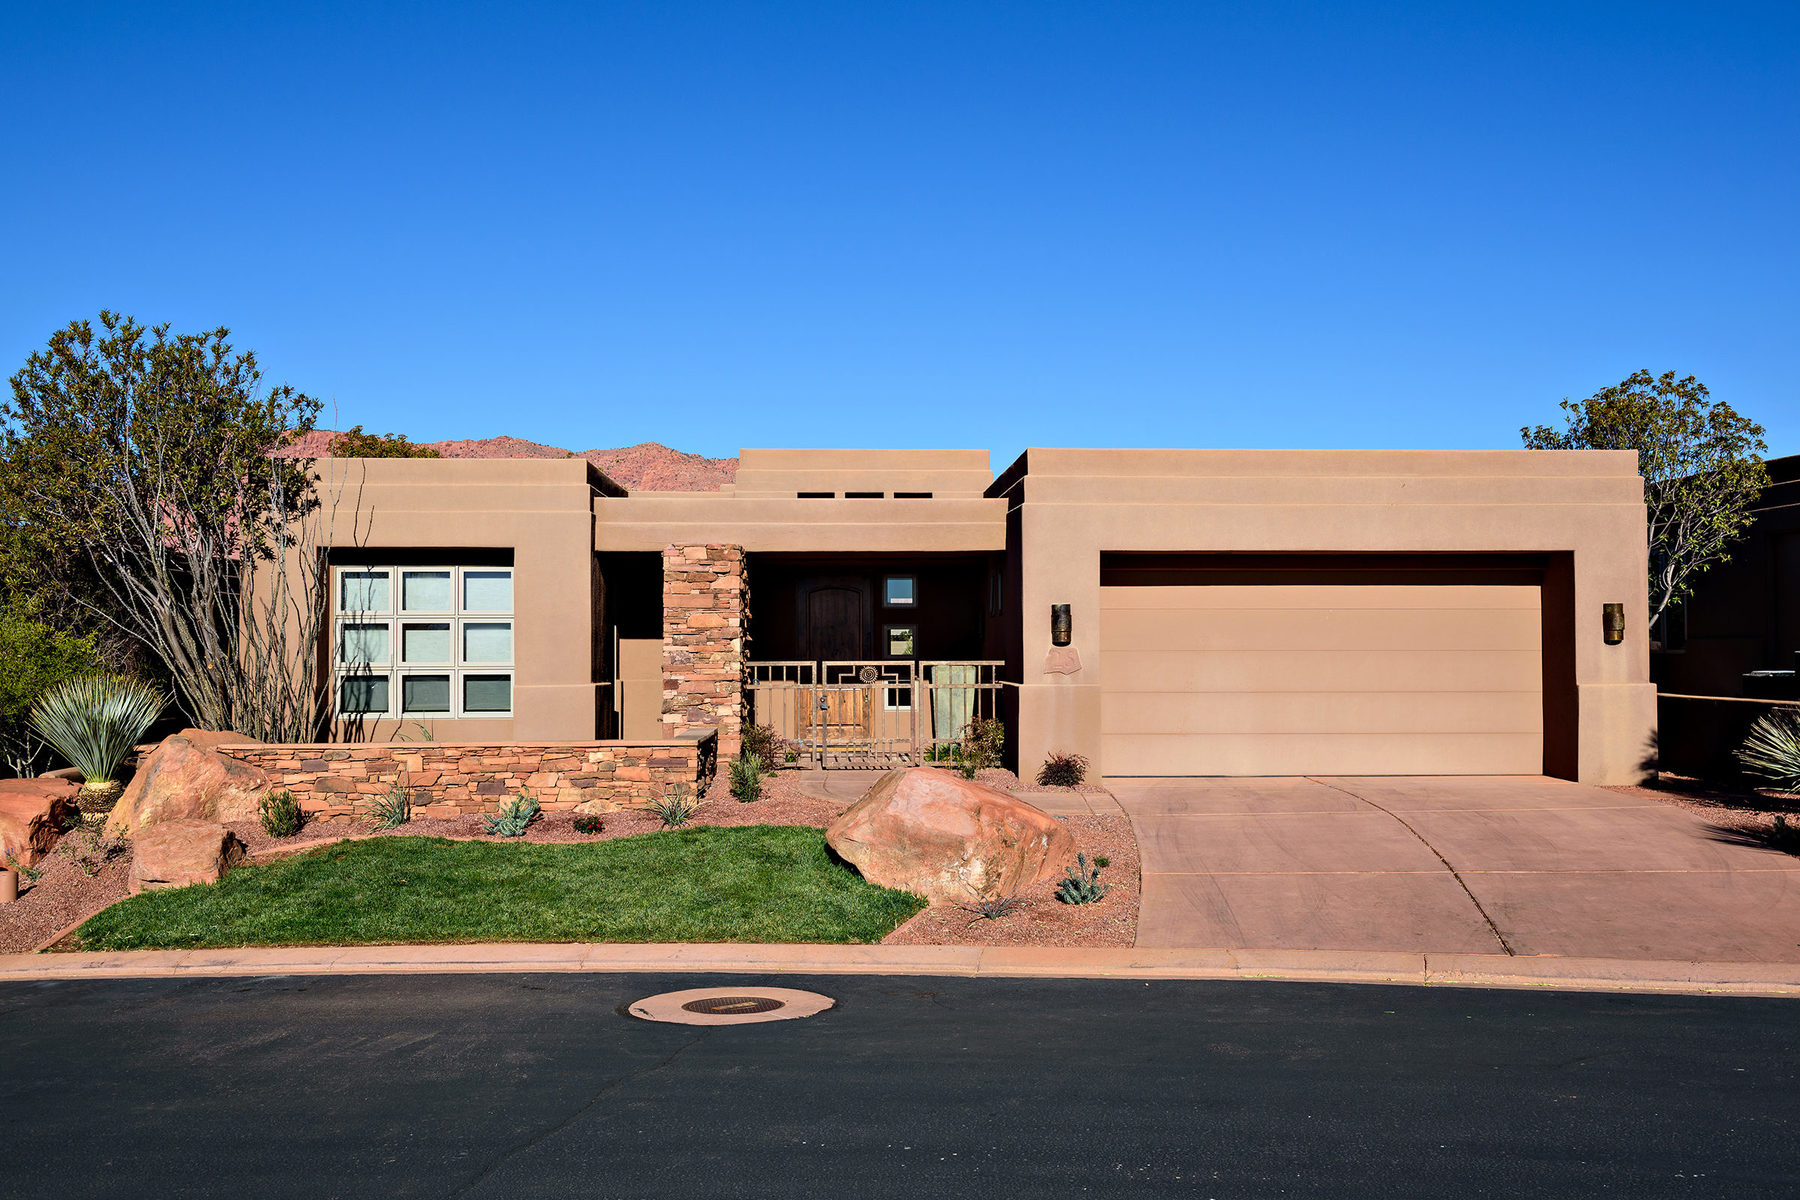 Casa Unifamiliar por un Venta en Wonderful Desert Home in Premier Community of Entrada 2410 W Entrada Trl #28 St. George, Utah 84770 Estados Unidos